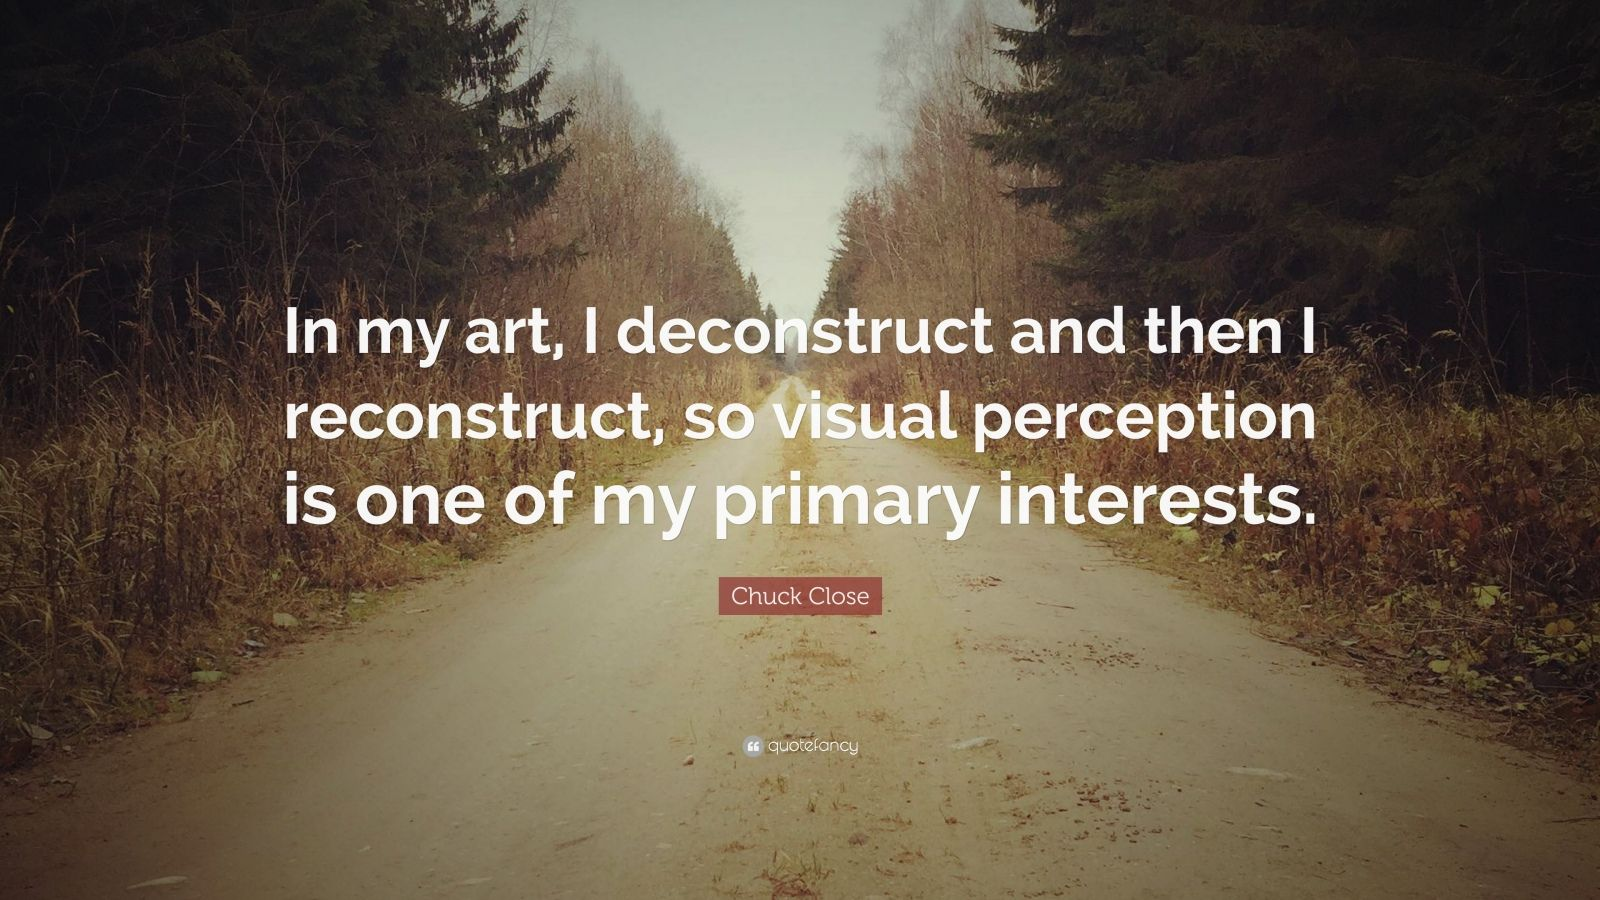 """Chuck Close Quote: """"In my art, I deconstruct and then I reconstruct, so visual perception is one of my primary interests."""""""